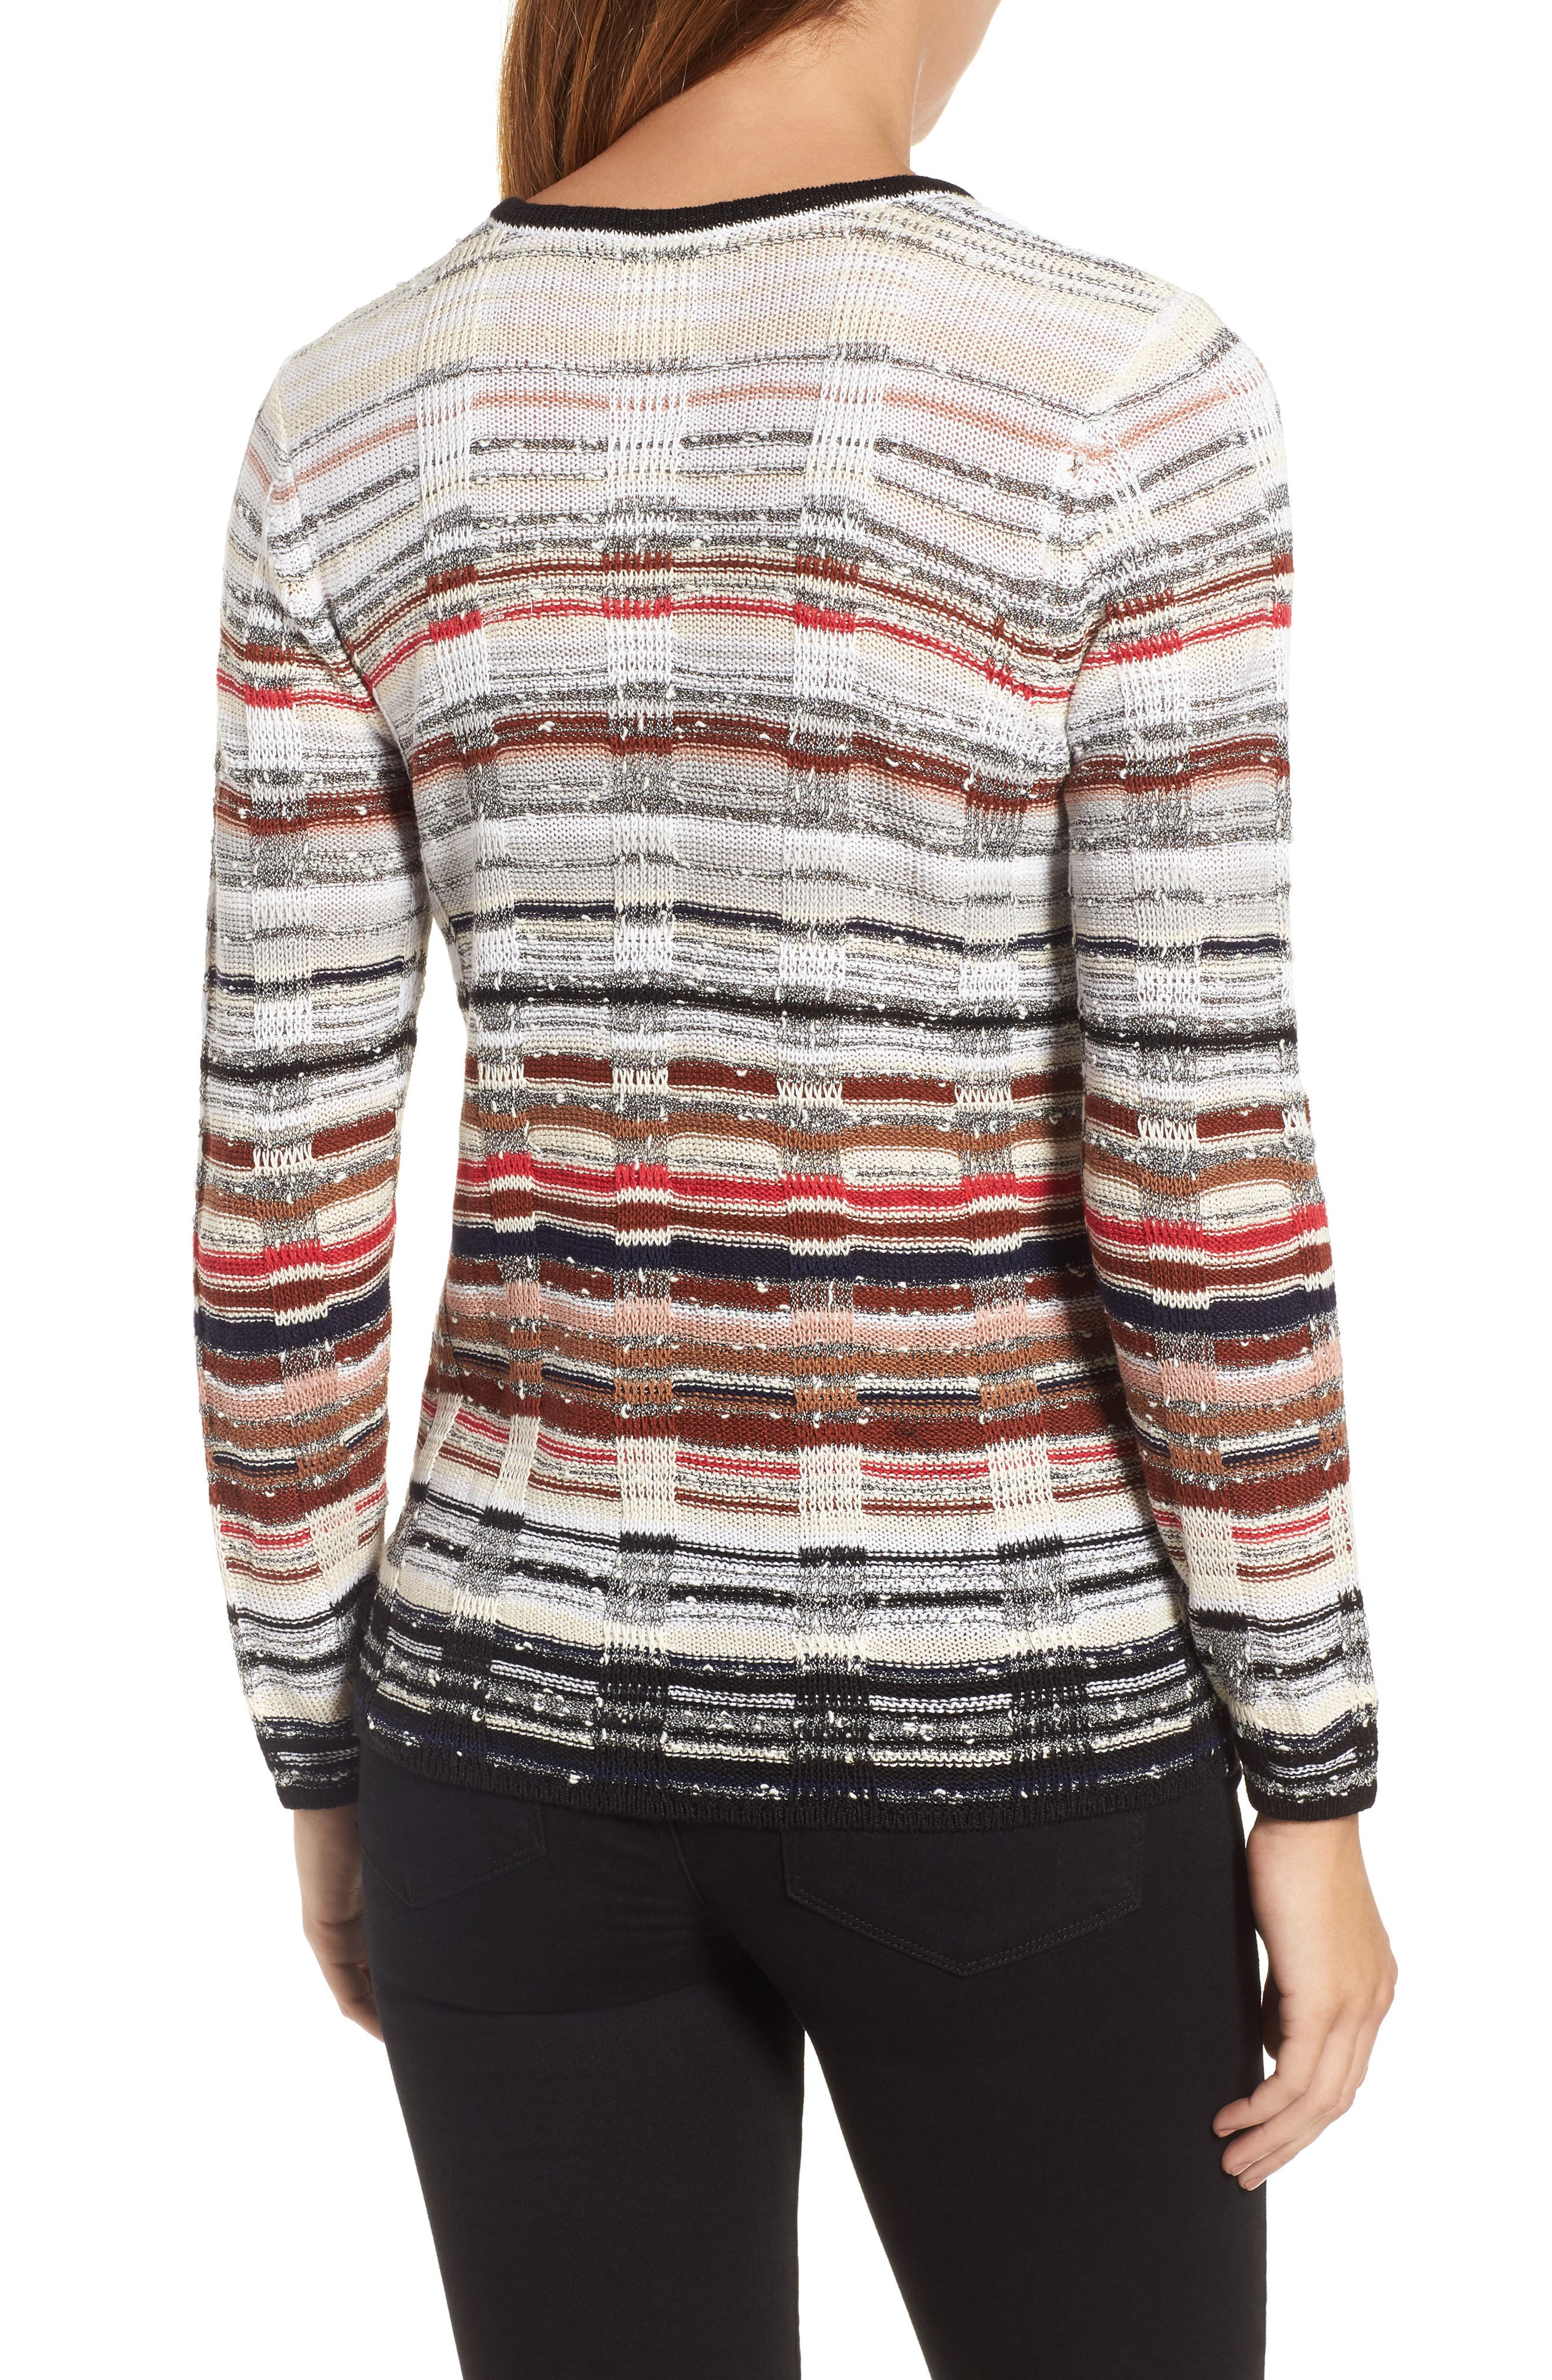 Red Hills Sweater,                             Alternate thumbnail 2, color,                             609